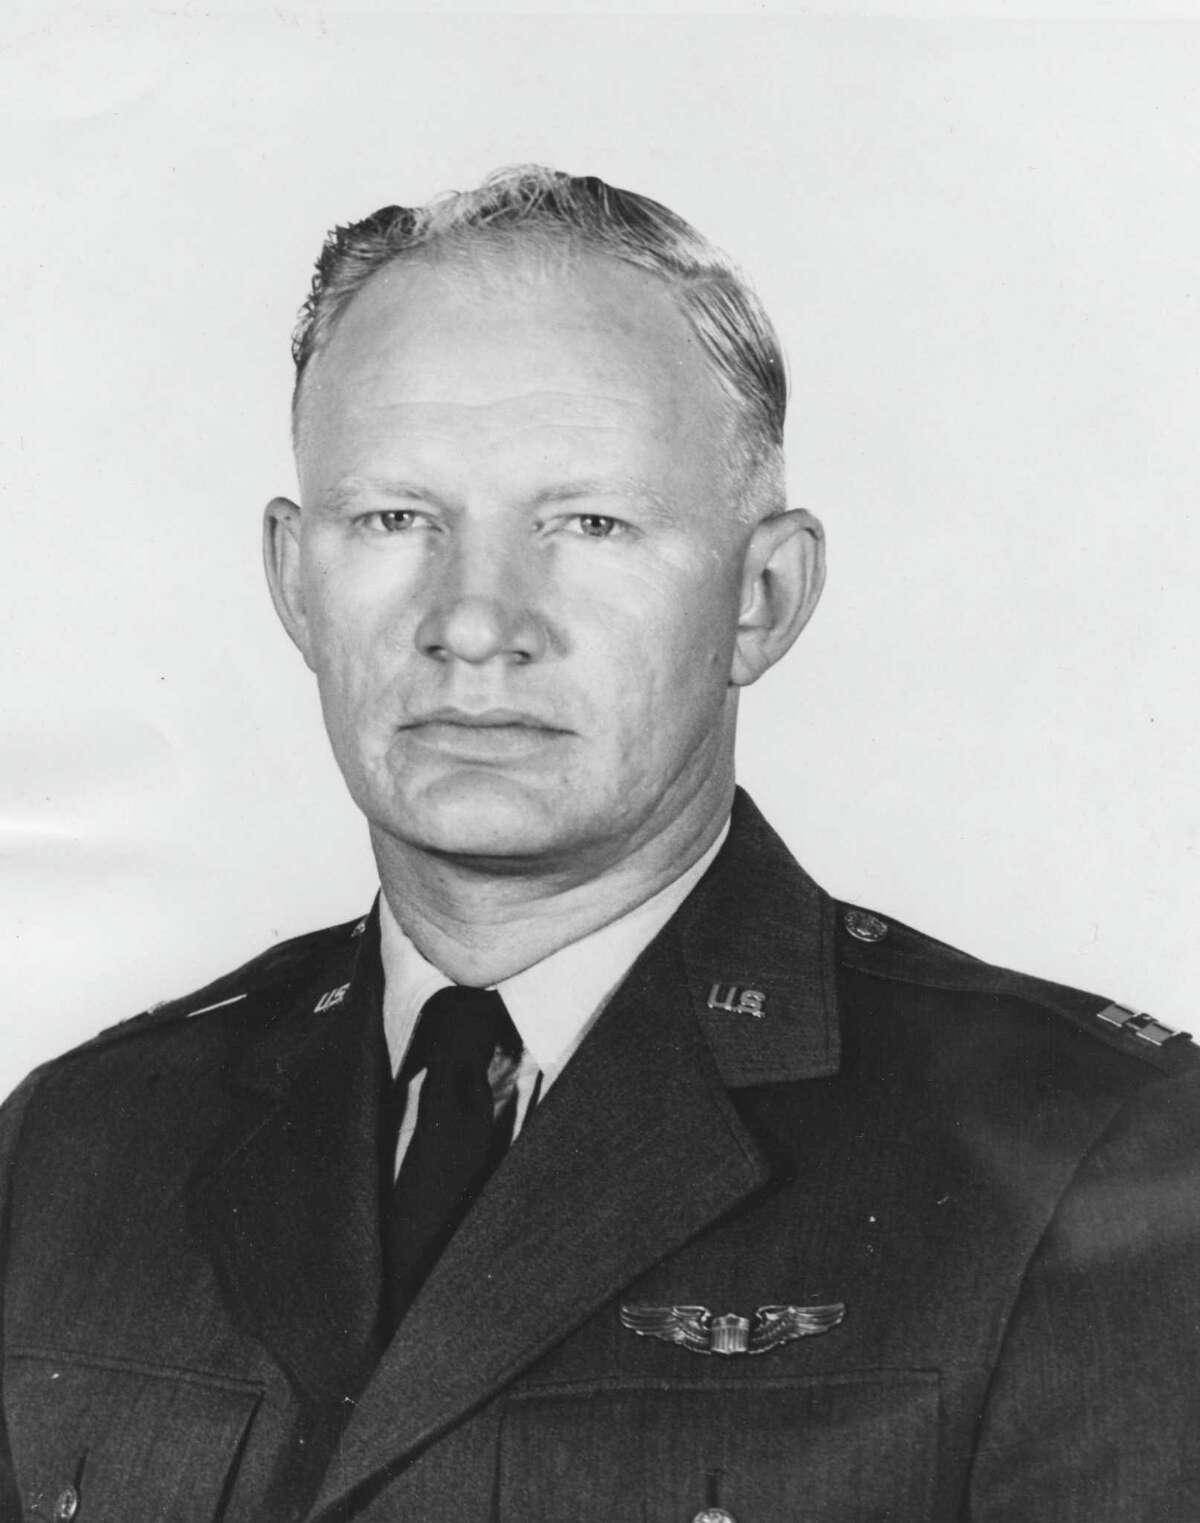 PHOTO FILED: GARY HEROD. Capt. Gary L. Herod, who died in a T-33 crash near Meyerland on March 15, 1961. Post file